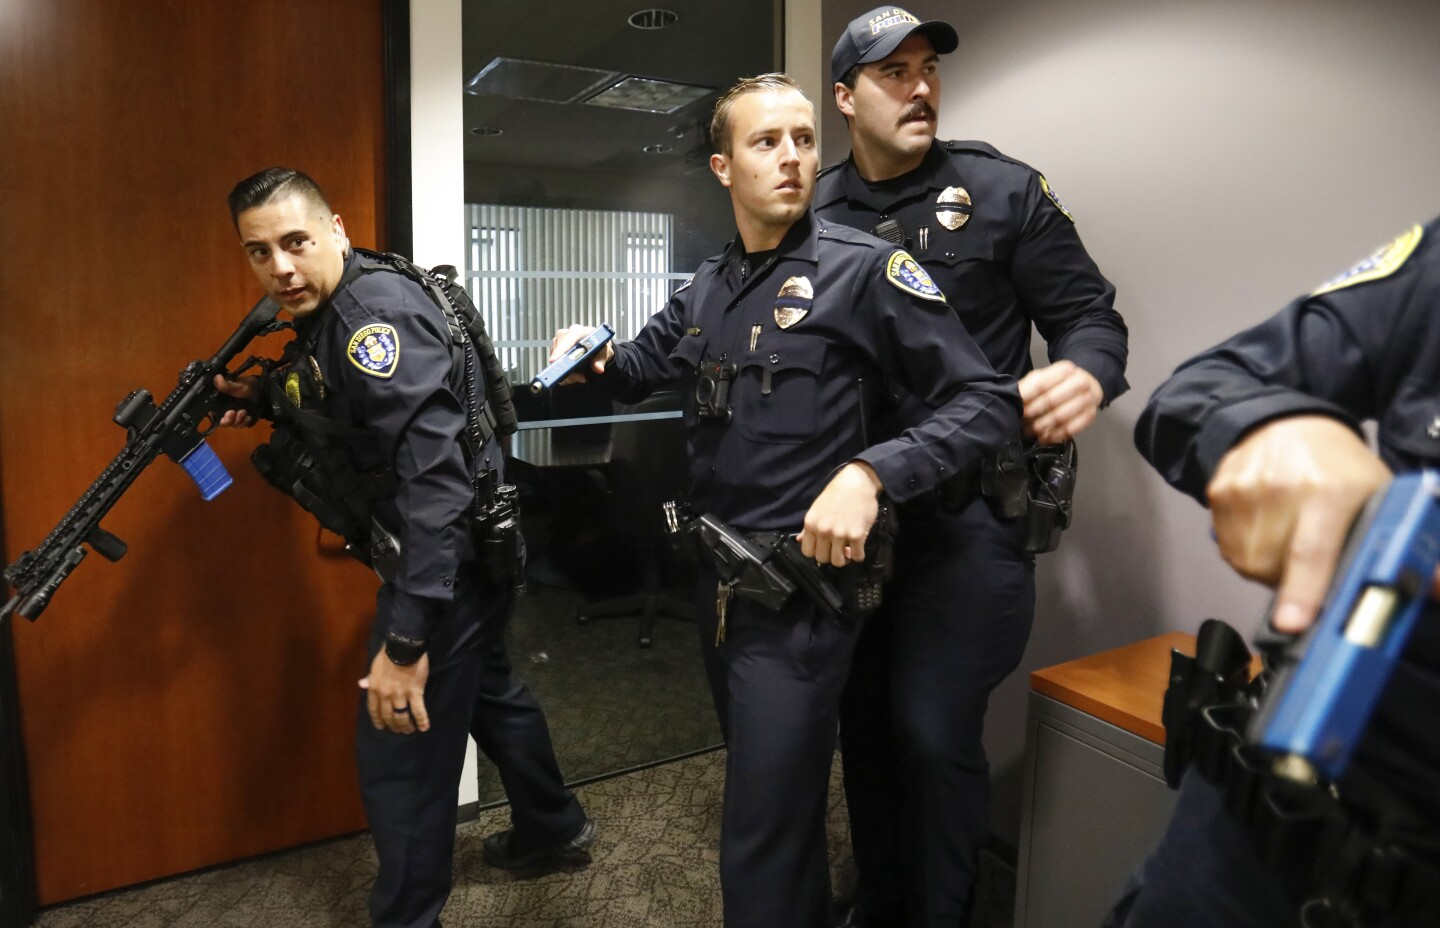 With weapons drawn during an active shooter drill, San Diego police officers search for the shooter on the 14th floor of the Emerald Plaza office building, August 17, 2019, in downtown San Diego. The drill began in the lobby of the adjoining Westin San Diego Hotel.